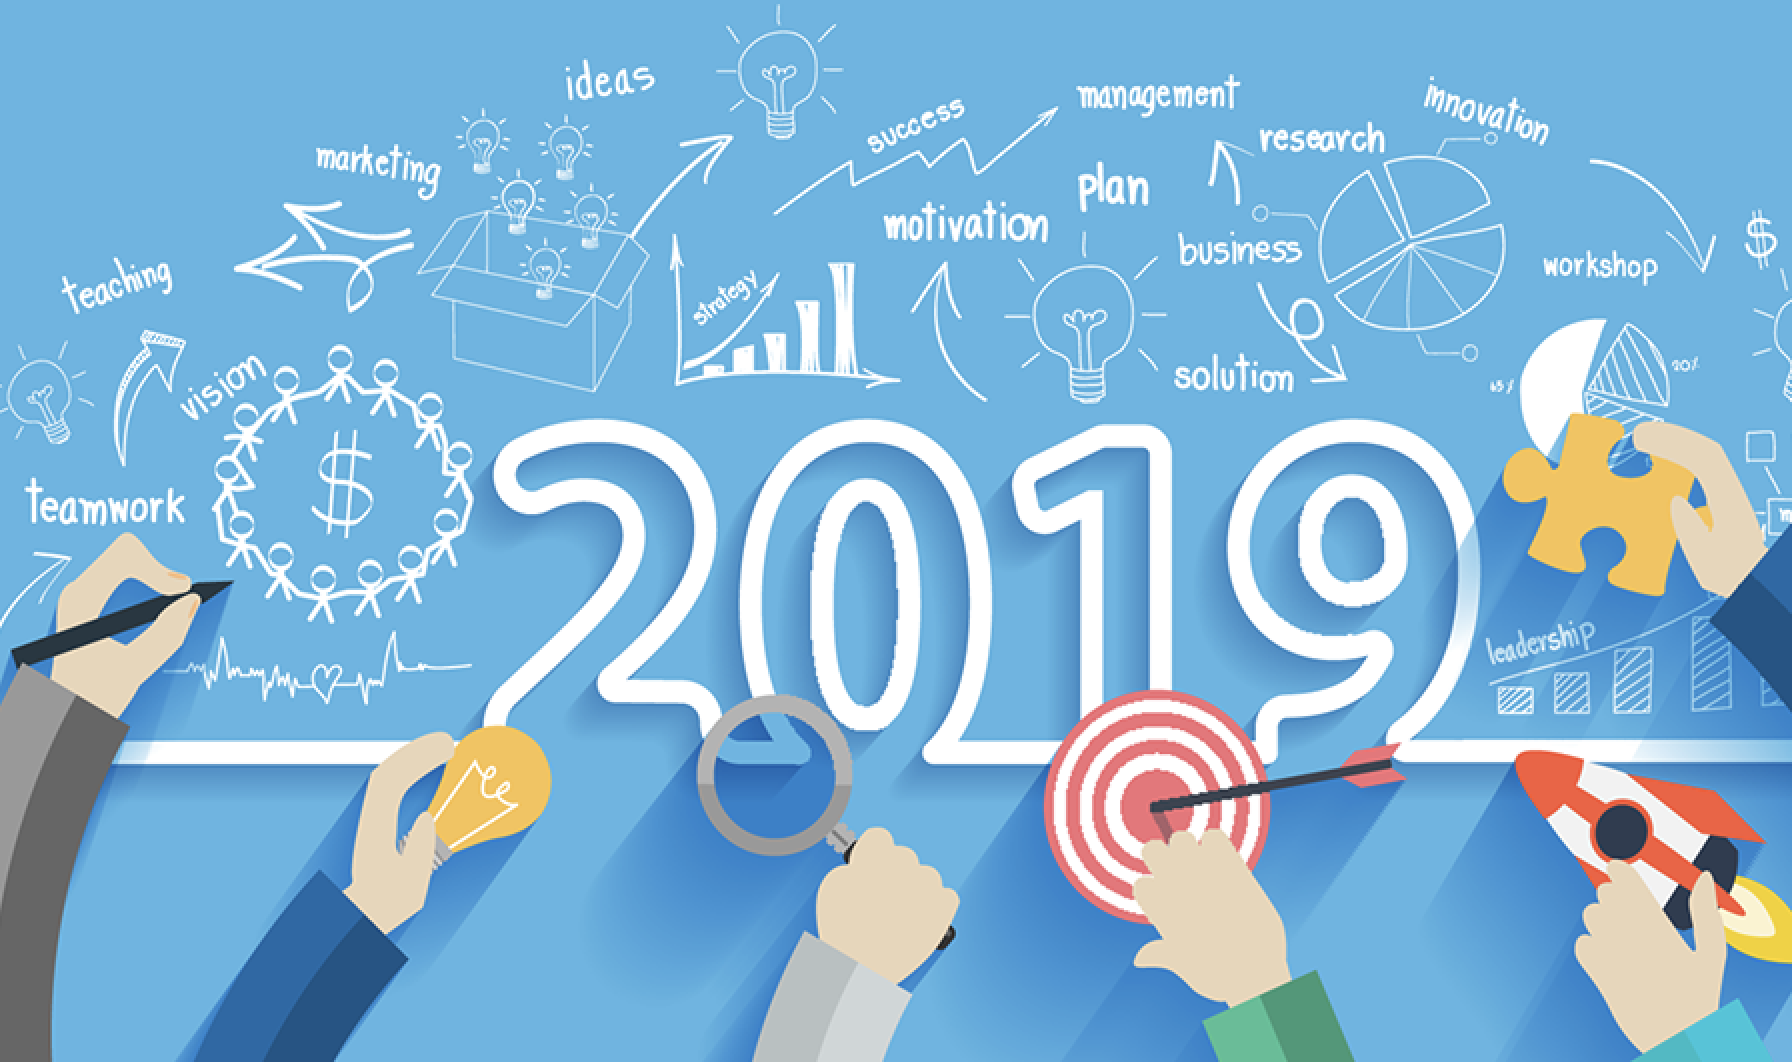 Las 5 mejores tendencias de marketing digital para 2019